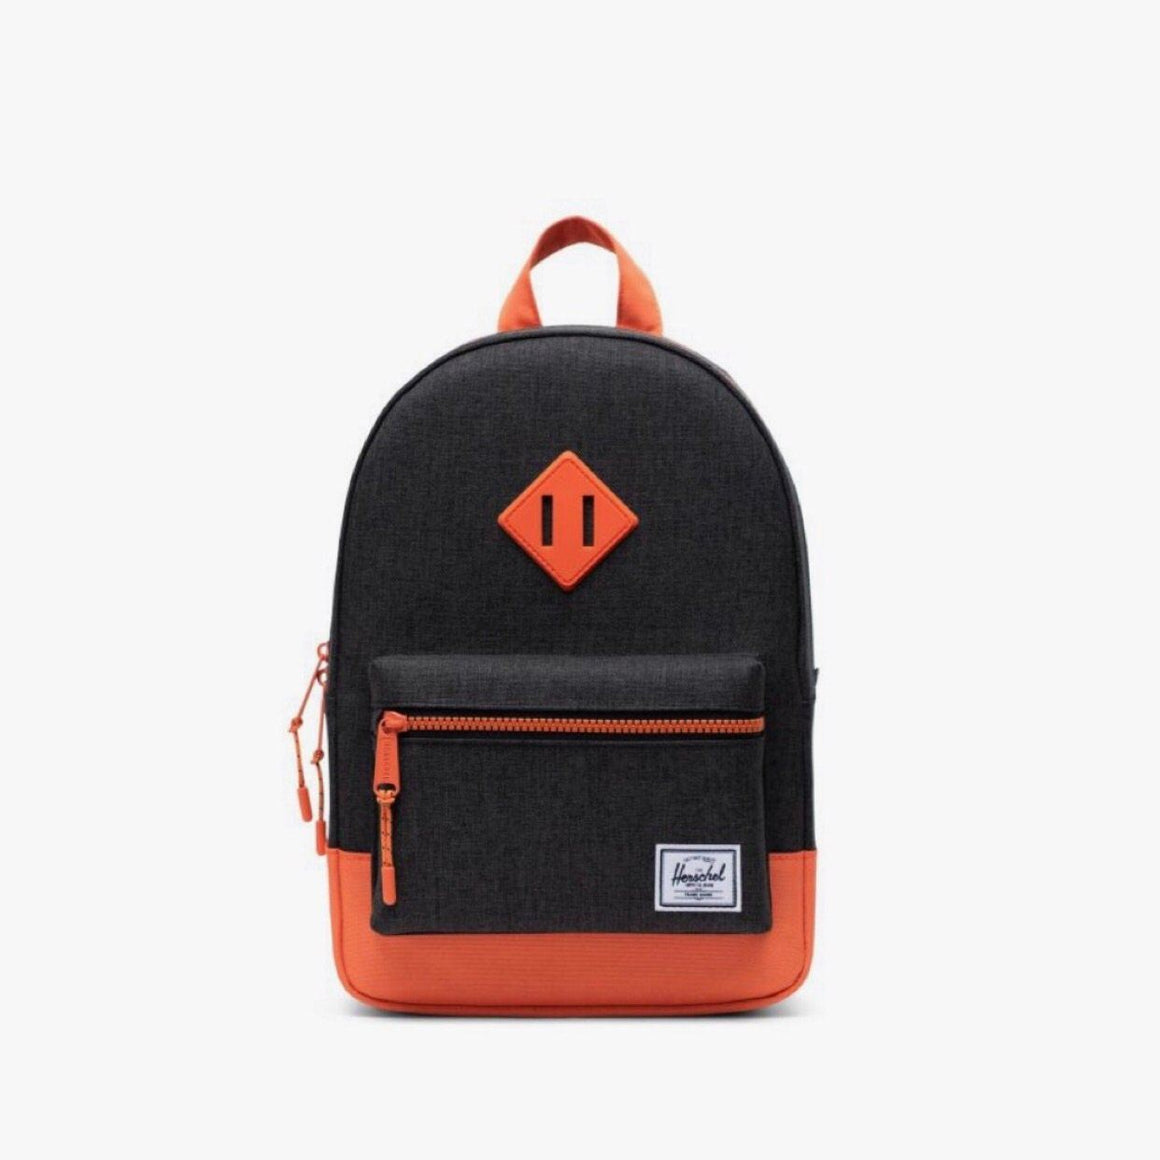 10313-03256-OS-Herschel Kids Heritage 9L Backpack - Black Crosshatch/Firecracker Backpack Herschel